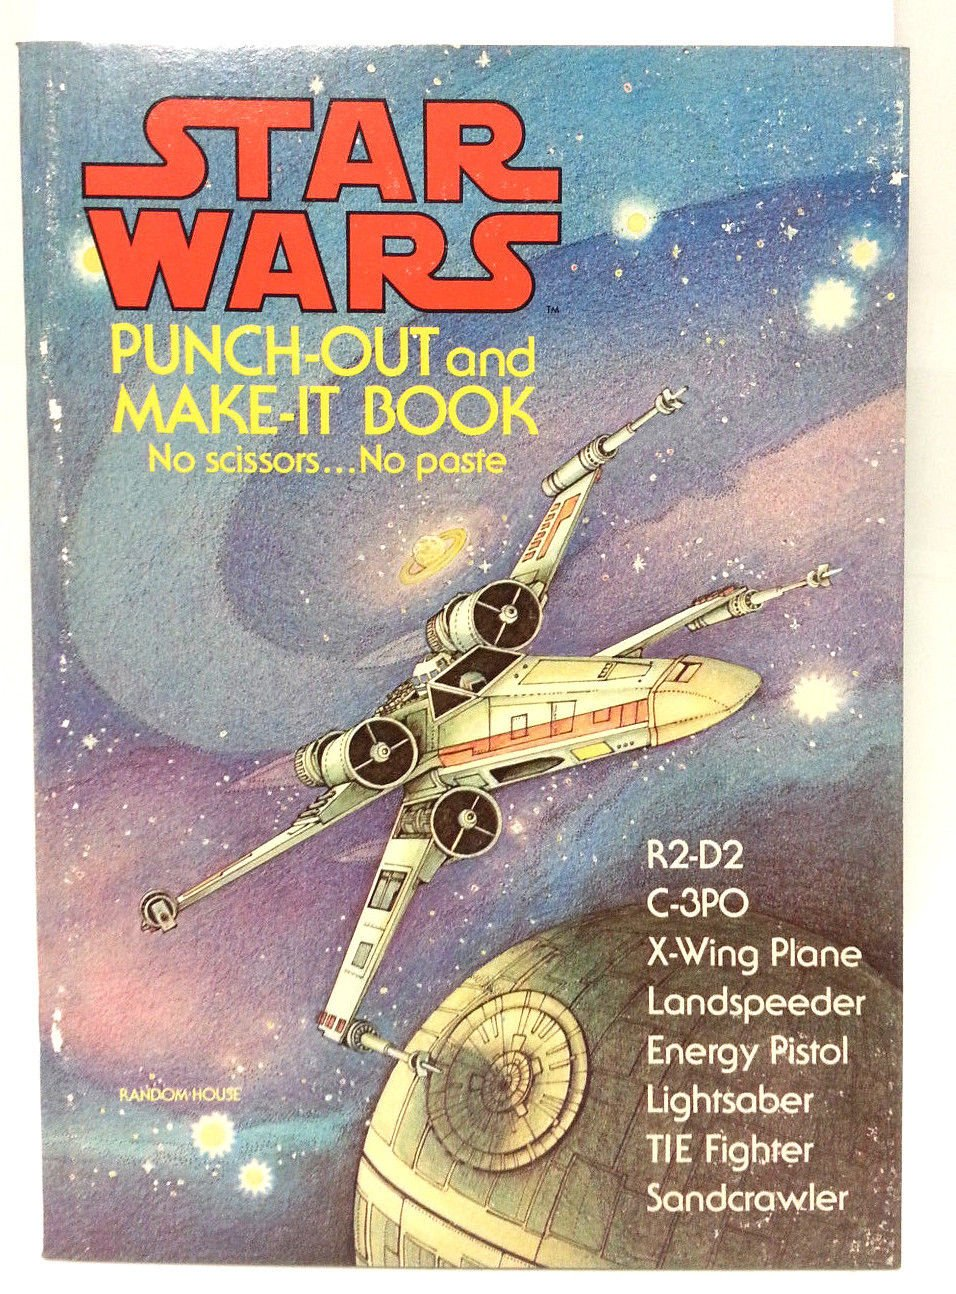 Star Wars Punch-Out and Make-It Book